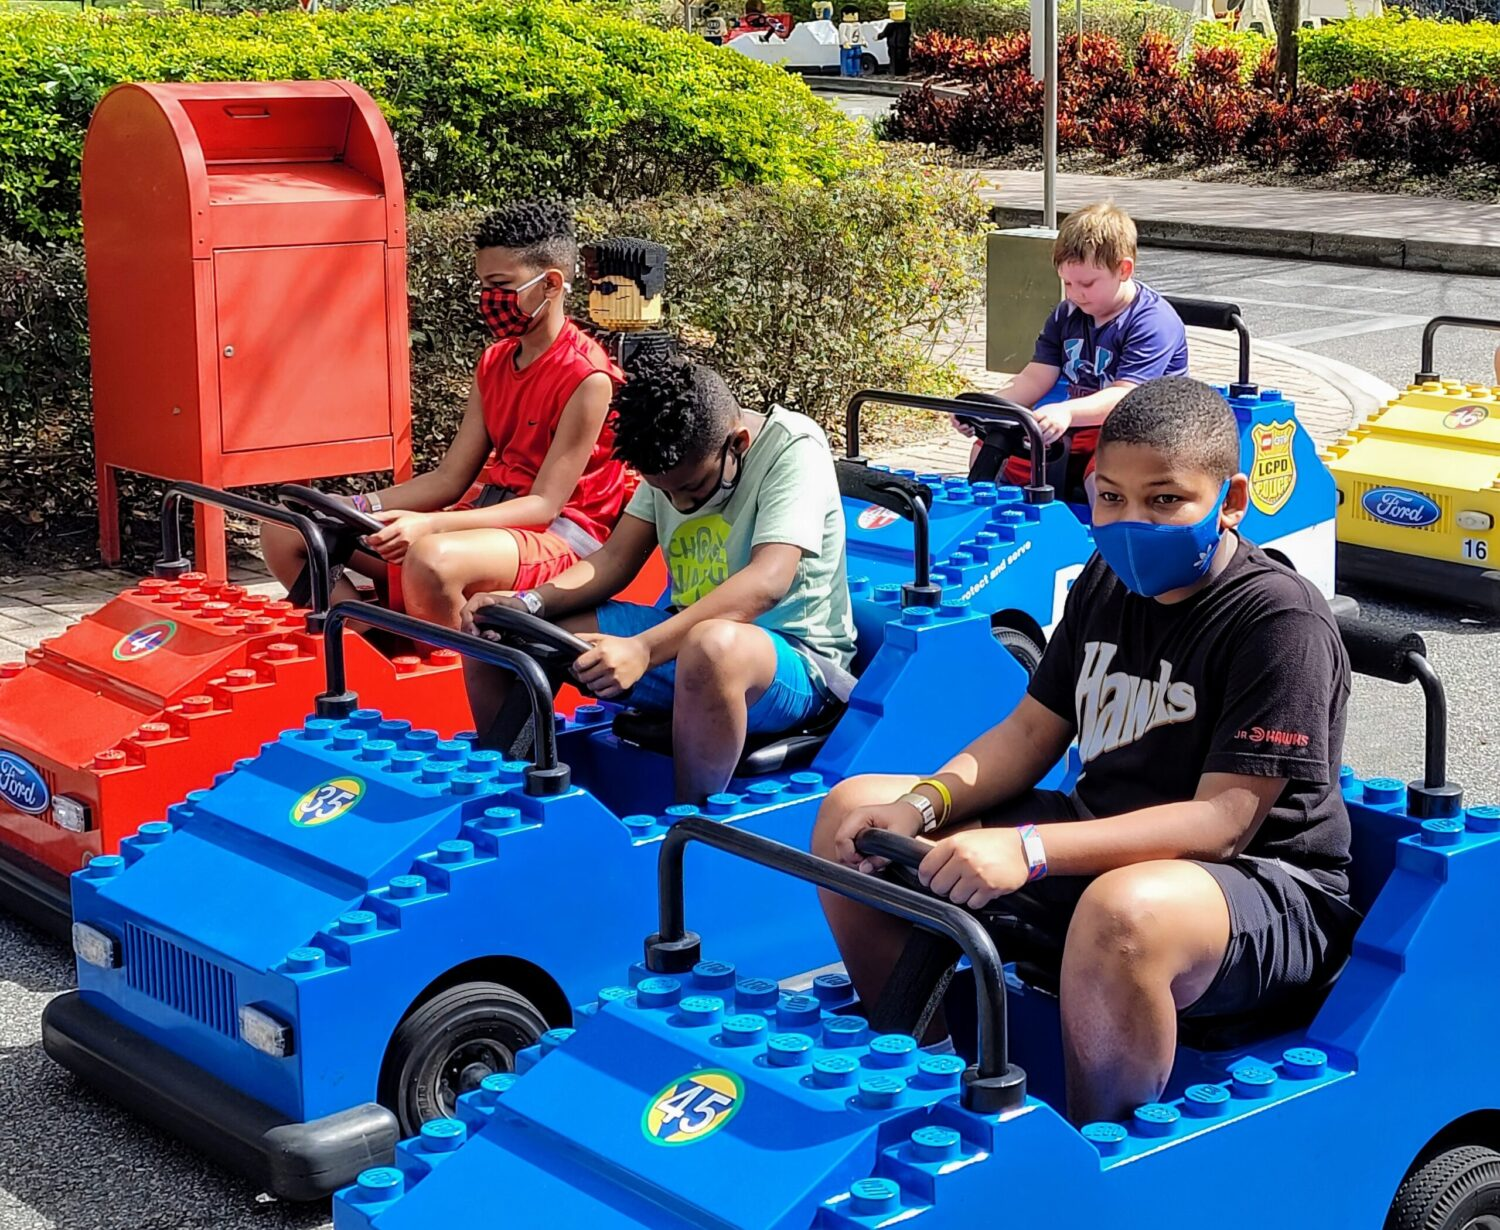 Tween children riding red and blue lego cars in the Driving School ride at LEGOLAND